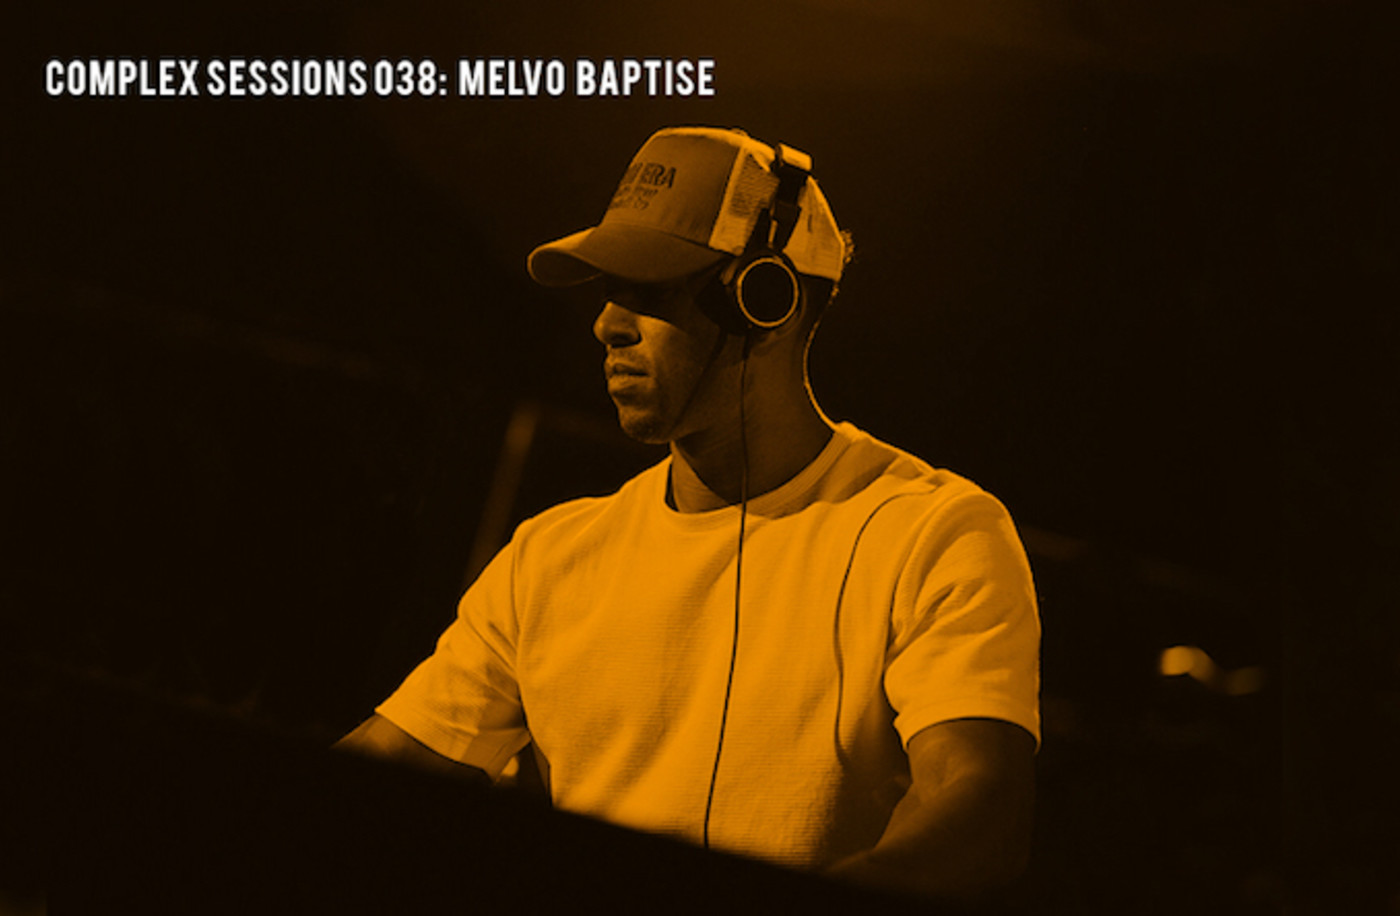 Complex Sessions 038: Melvo Baptiste